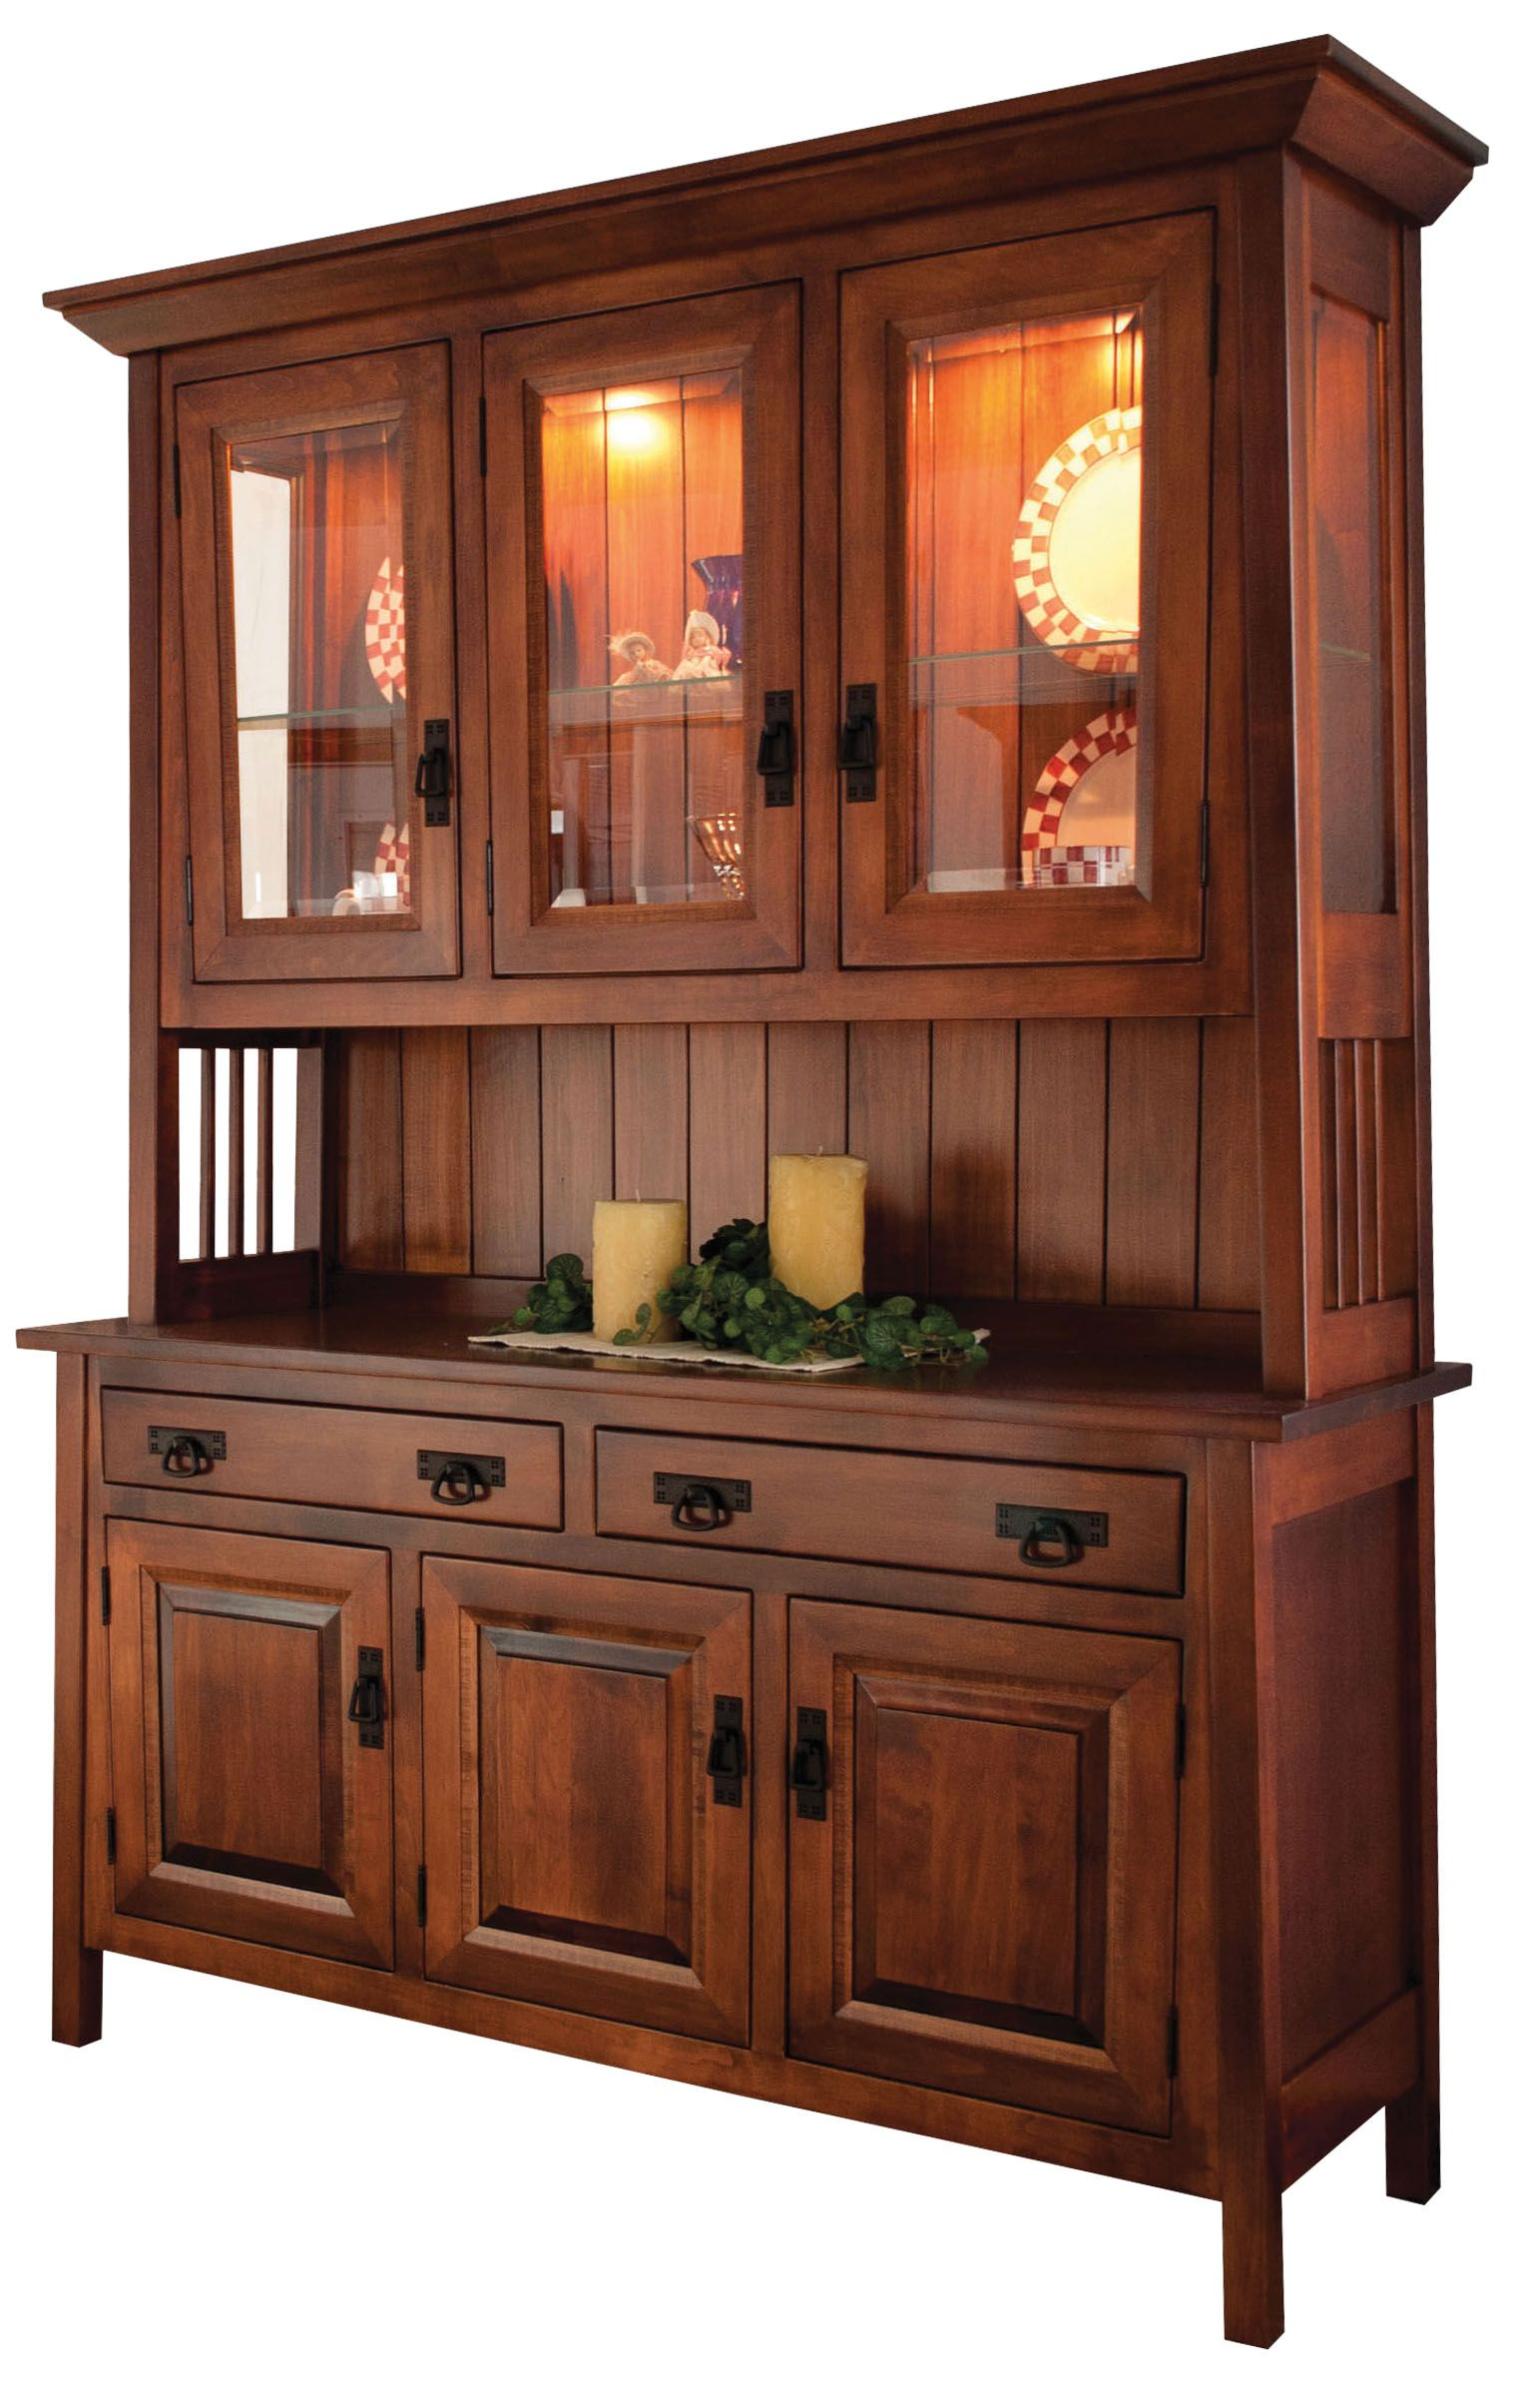 Dining Room Furniture Hutch Fascinating 3Door Hutches  Dining Room Furniture  Amish Oak In Texas  Misc Design Decoration